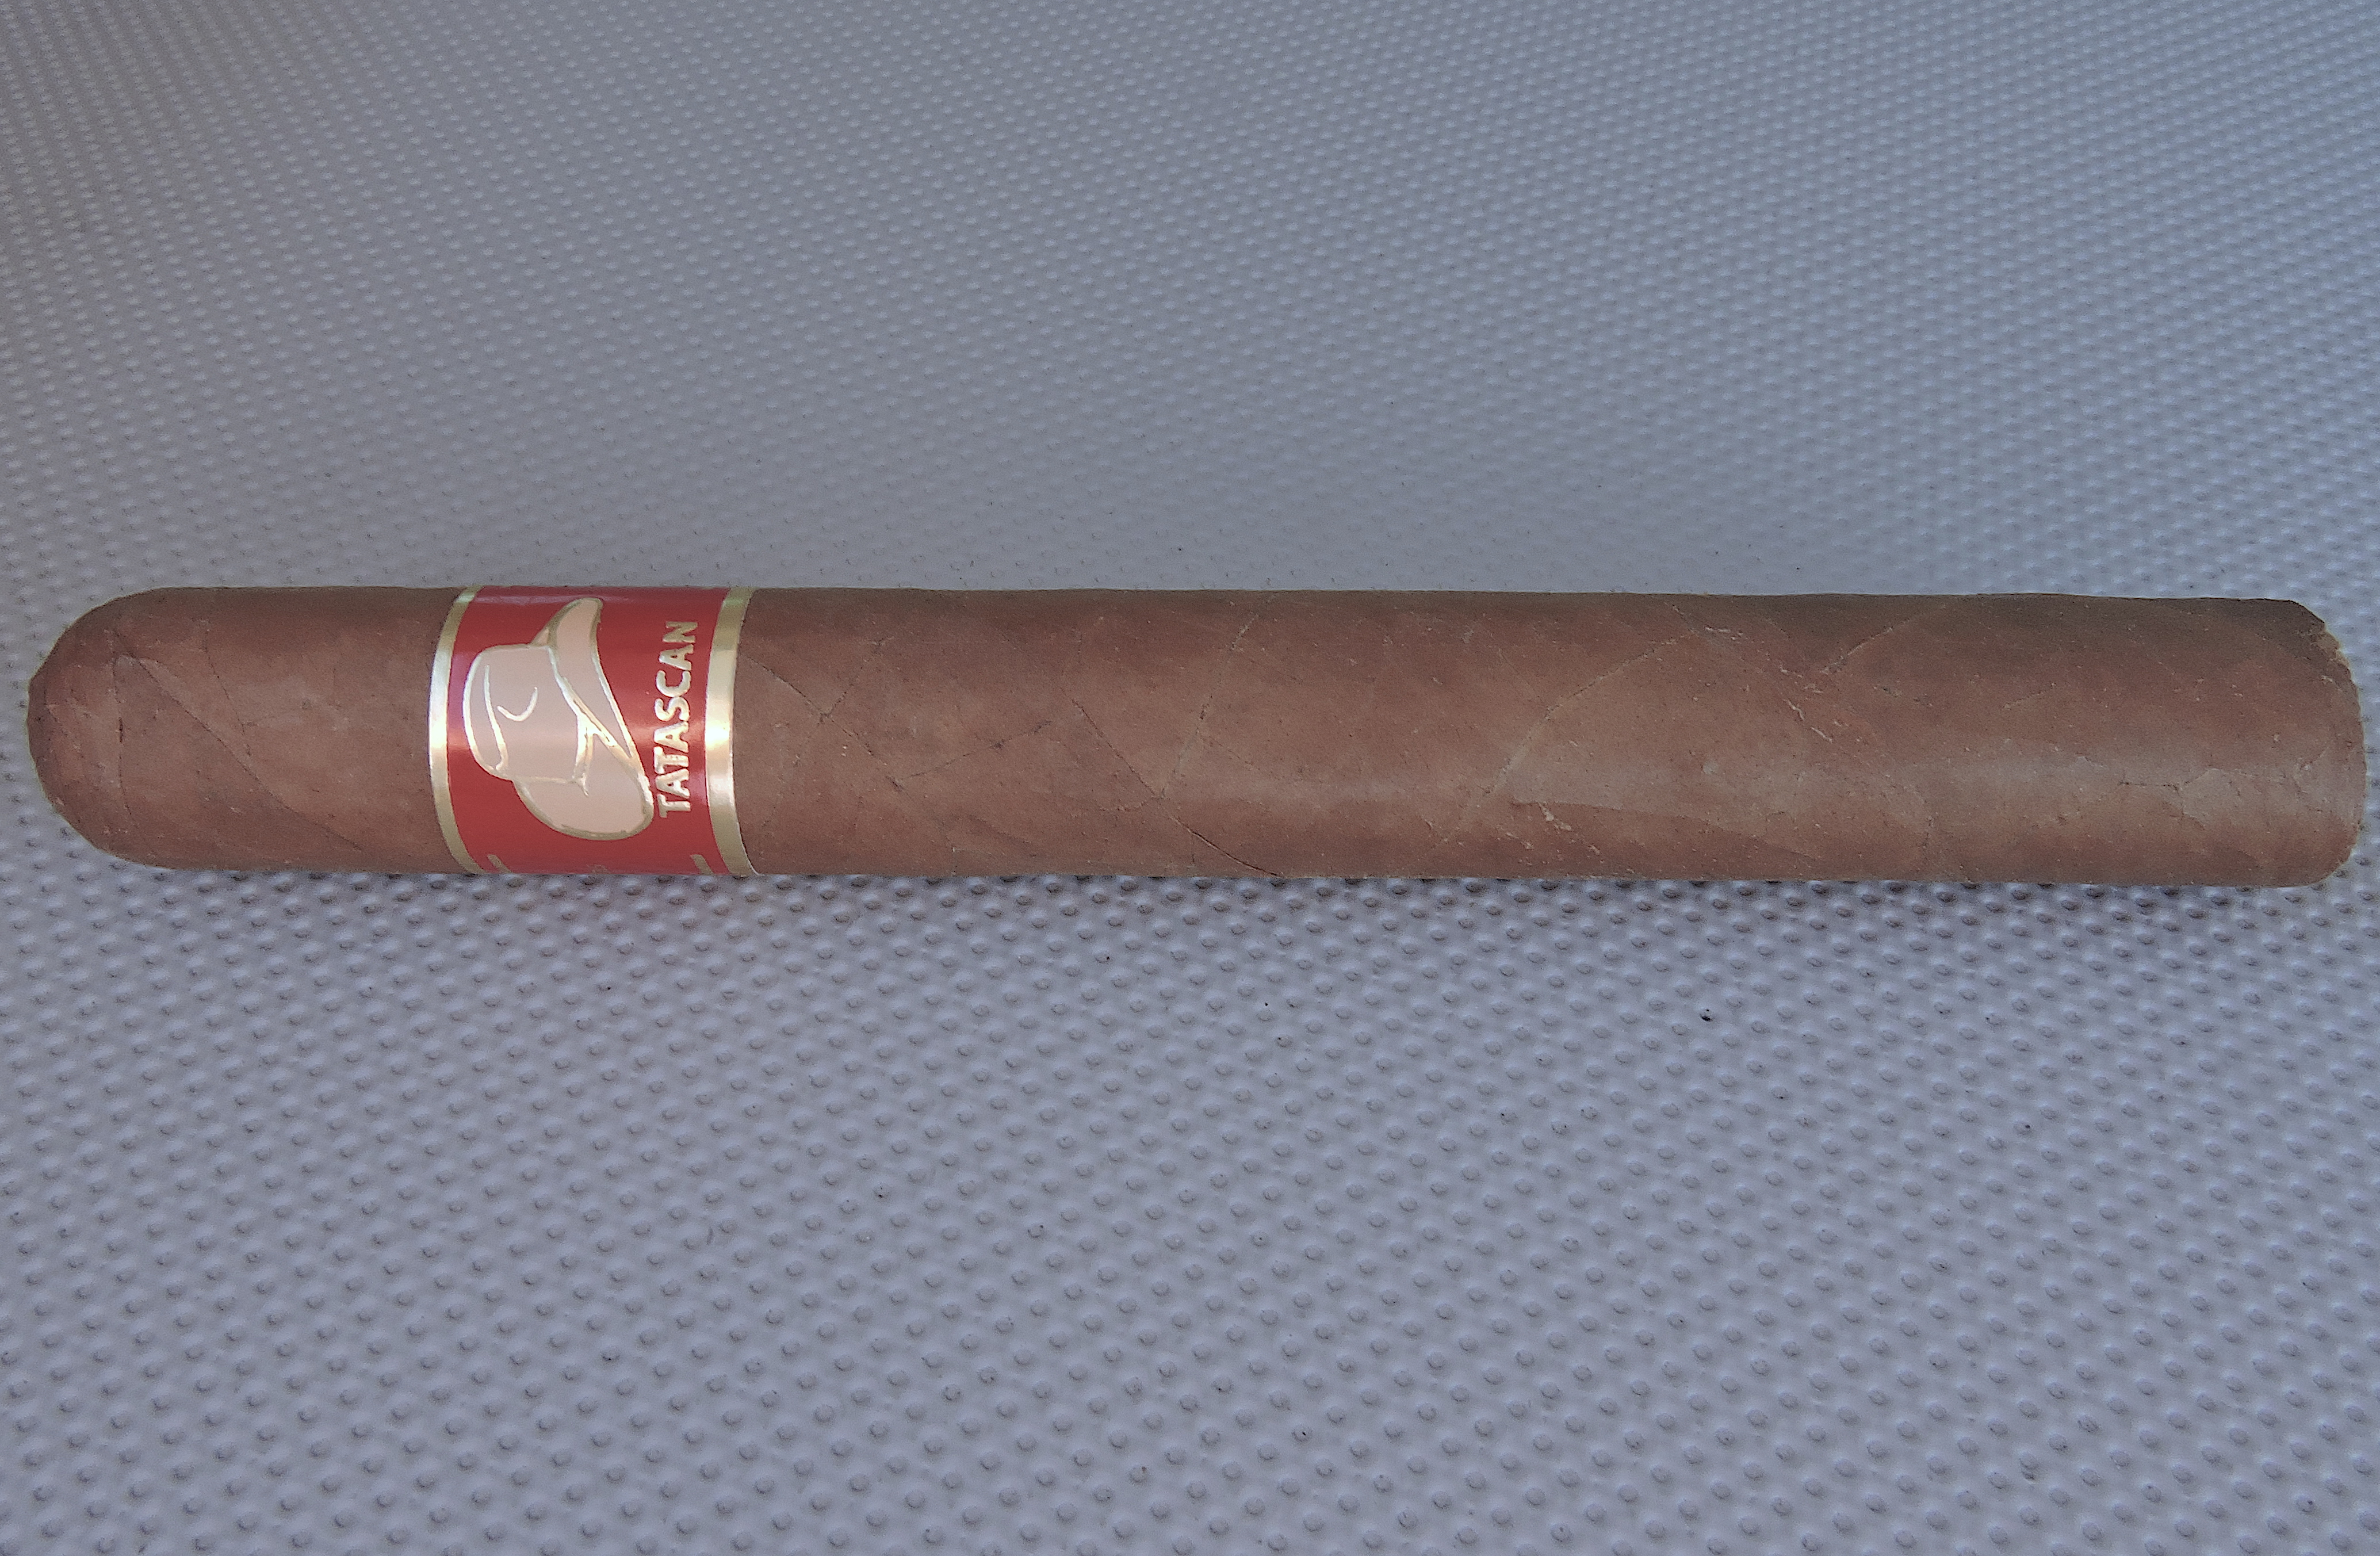 Cigar Review: Tatascan Habano Toro by JRE Tobacco Co